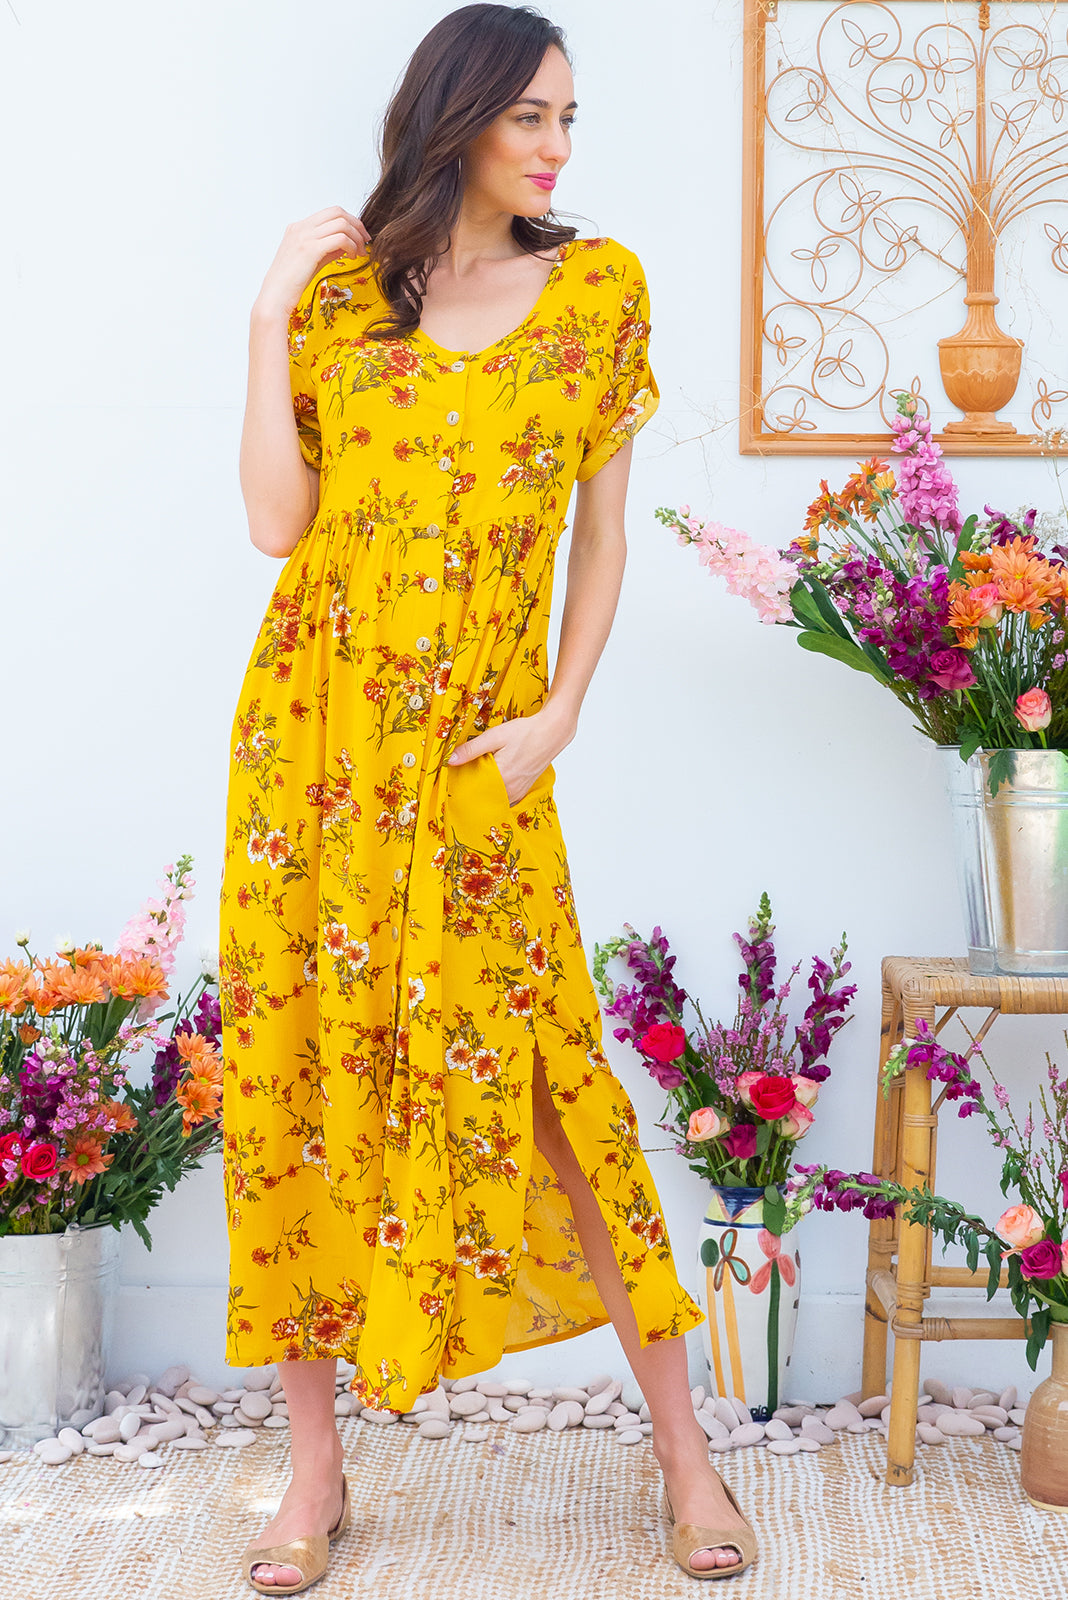 Rocco Golden Sunsets button front maxi dress with roll up tab sleeves, deep side pockets, adjustable tab waist and a soft loose fit comes in a deep golden yellow floral print on crinkle textured 100% rayon